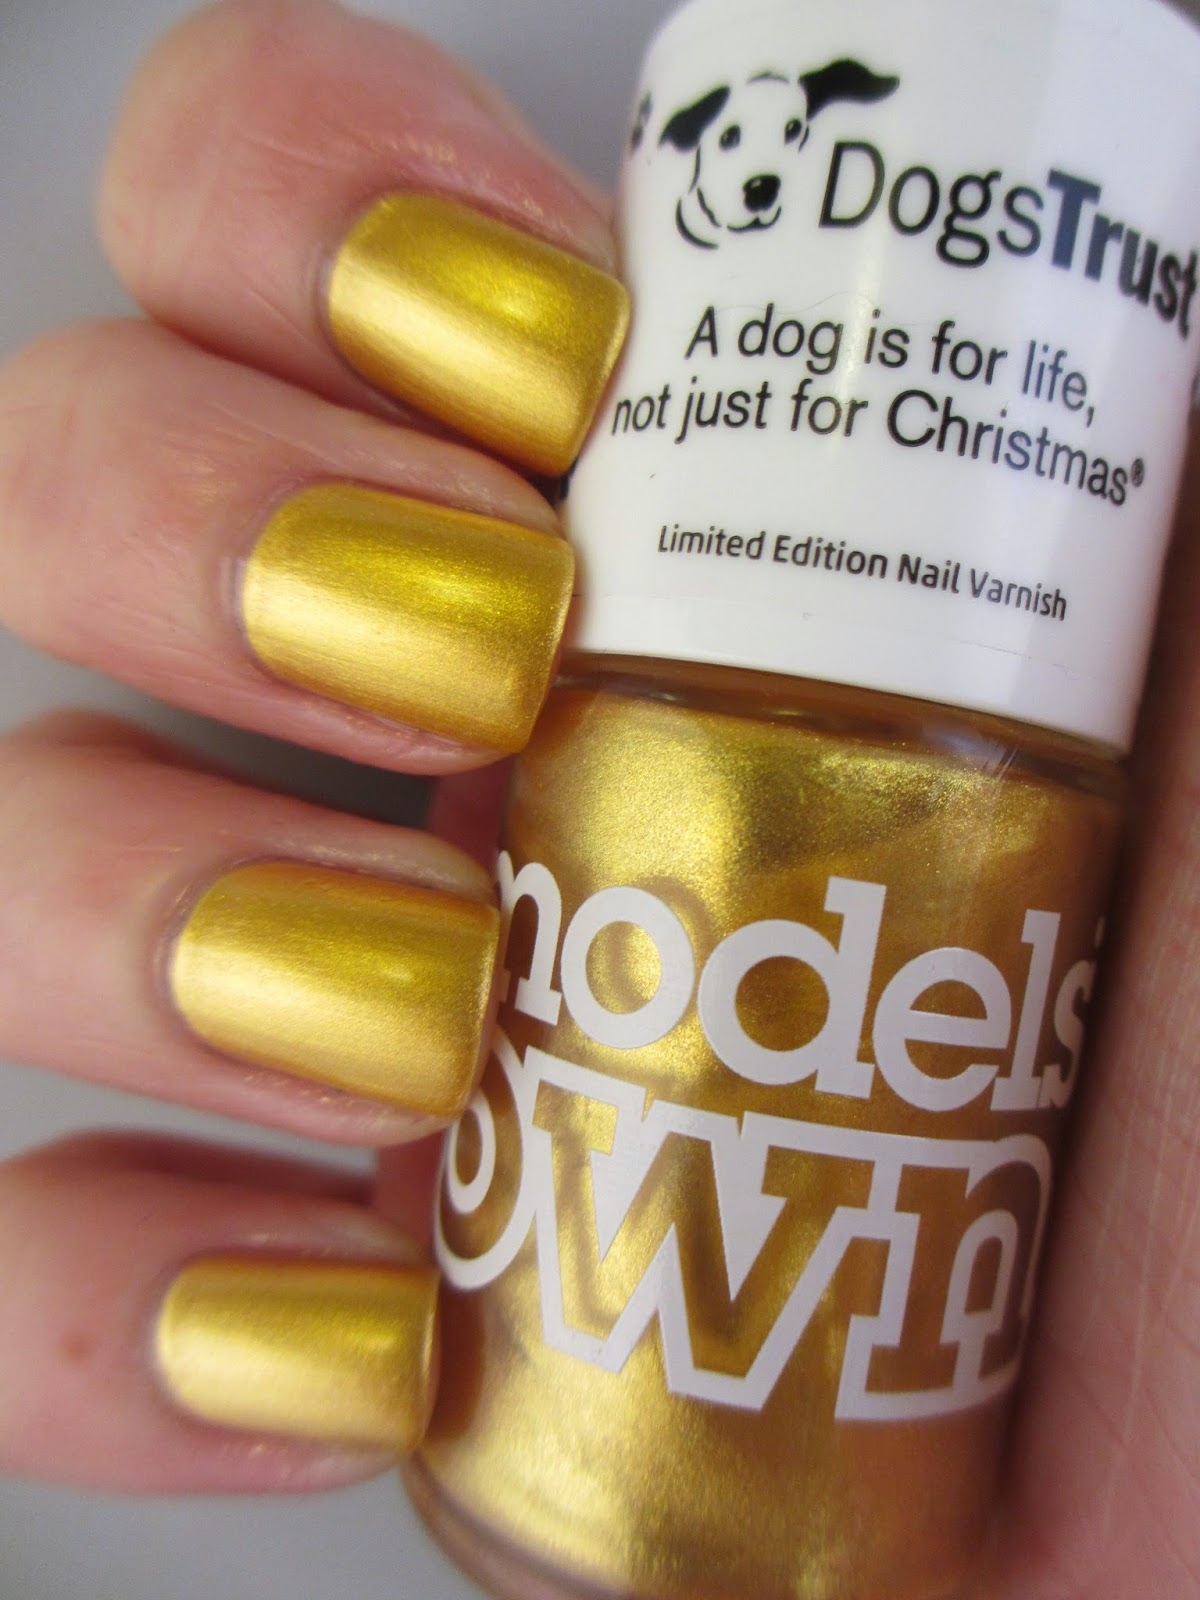 Models-Own-Dog's-Trust-yellow-gold-nail-polish-pdf